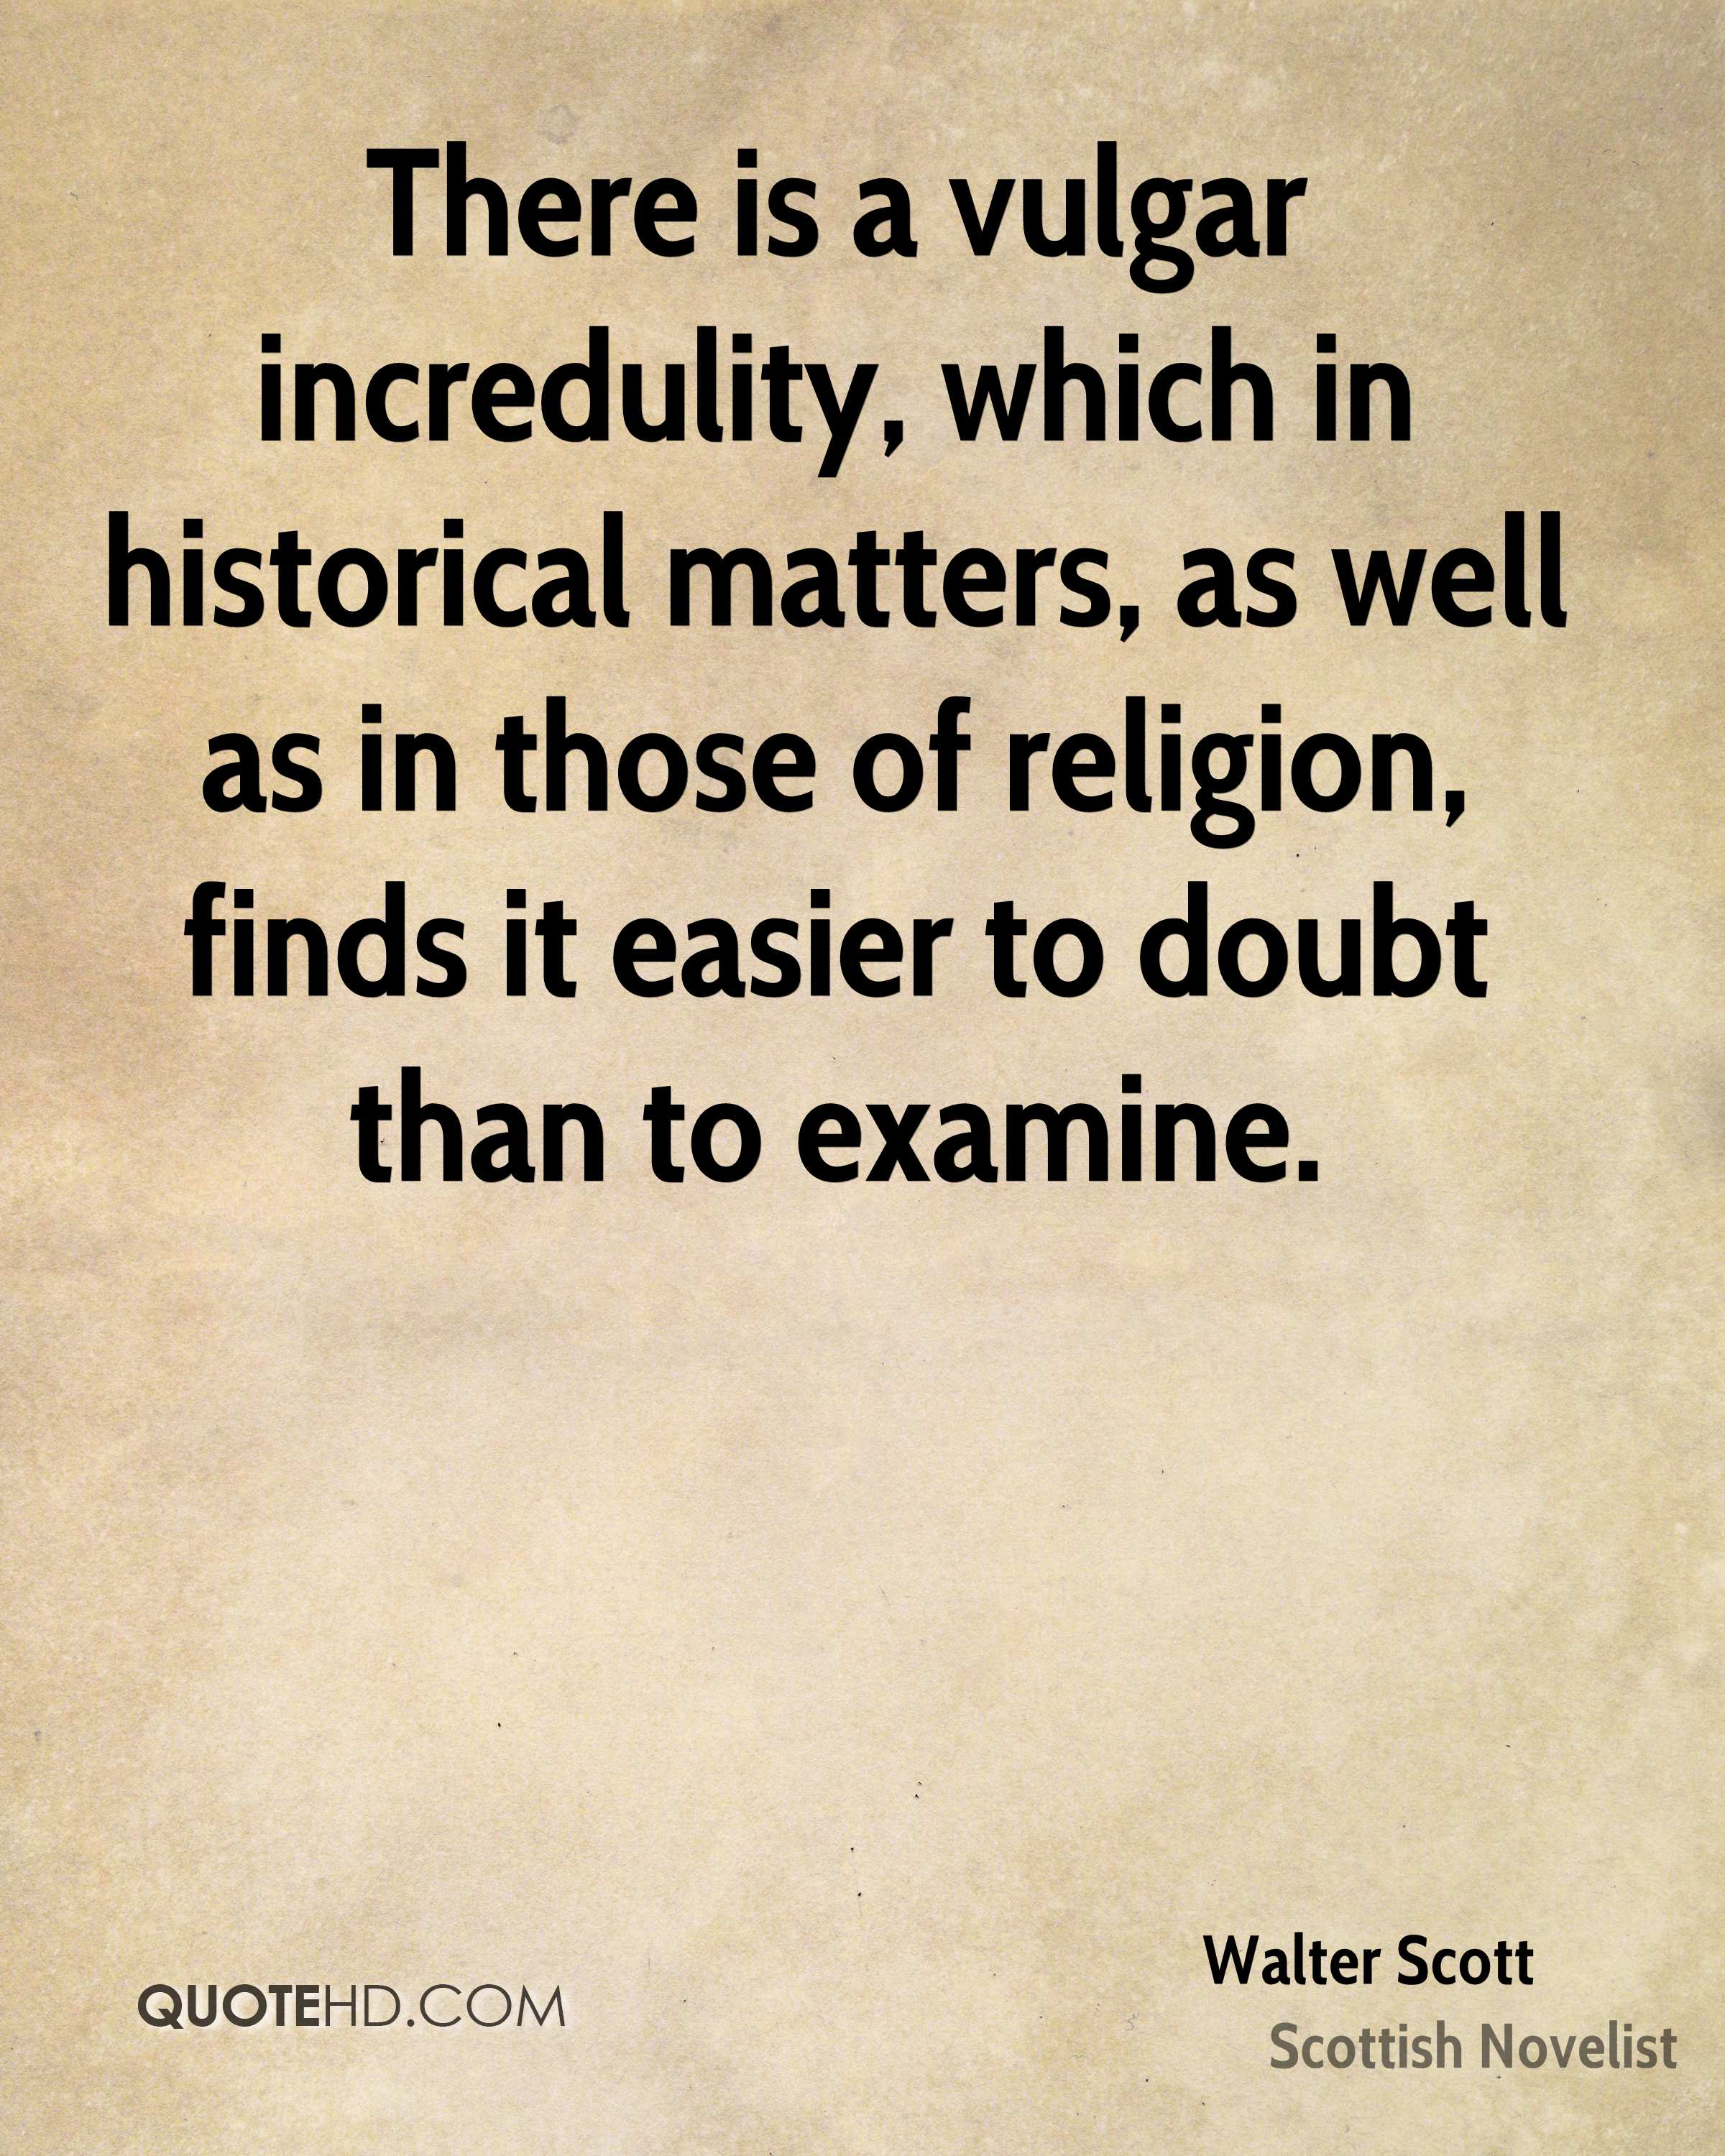 There is a vulgar incredulity, which in historical matters, as well as in those of religion, finds it easier to doubt than to examine.